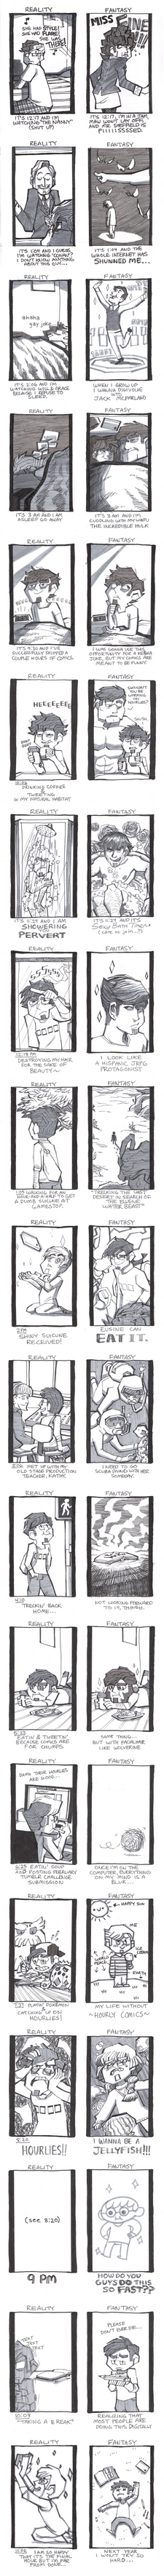 HOURLY COMIC DAY 2011 by Hedrew